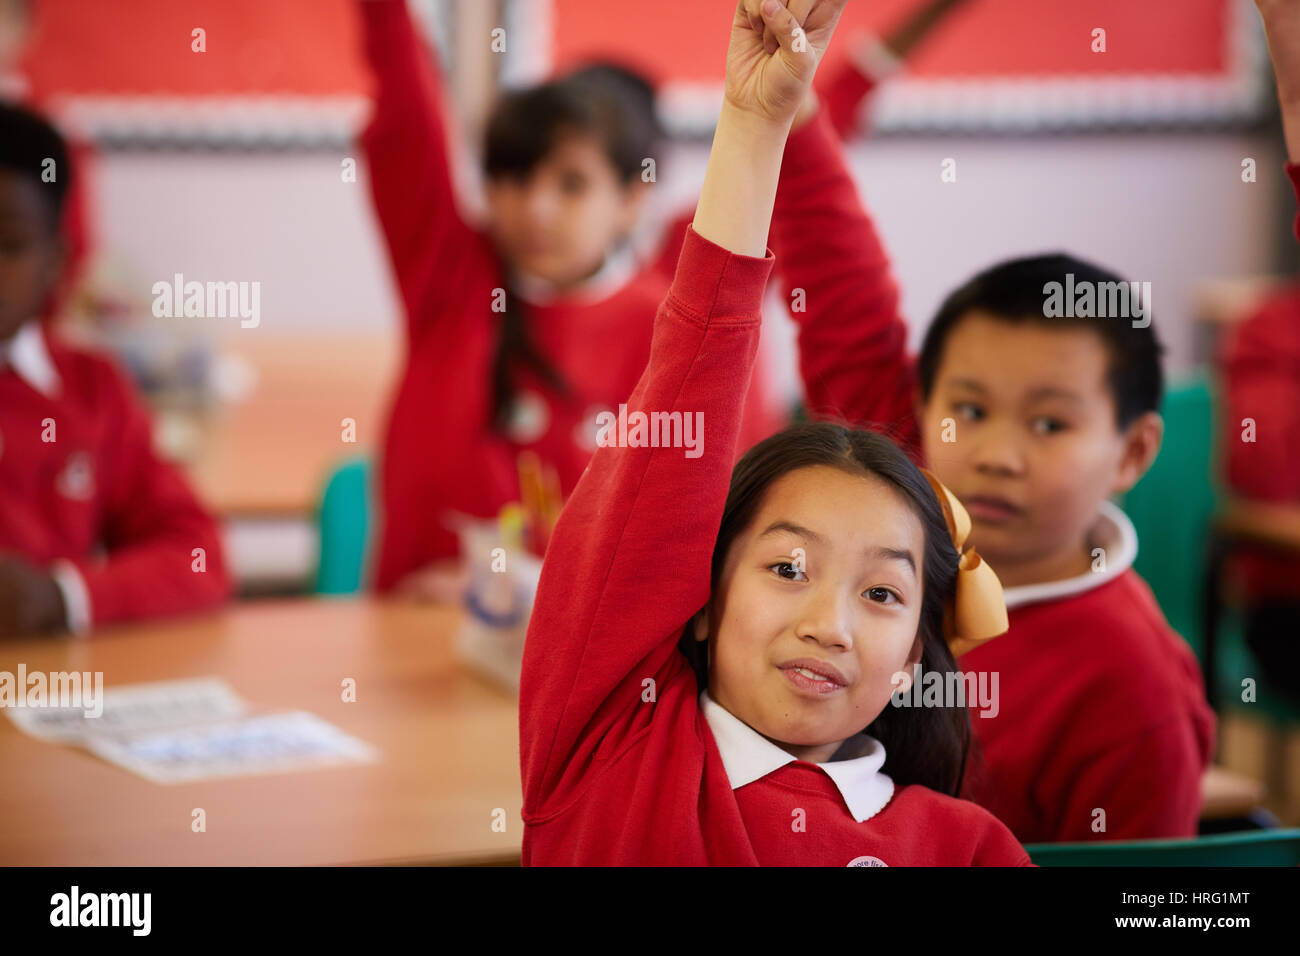 Multicultural school children at a primary school in Miles Platting Manchester. - Stock Image